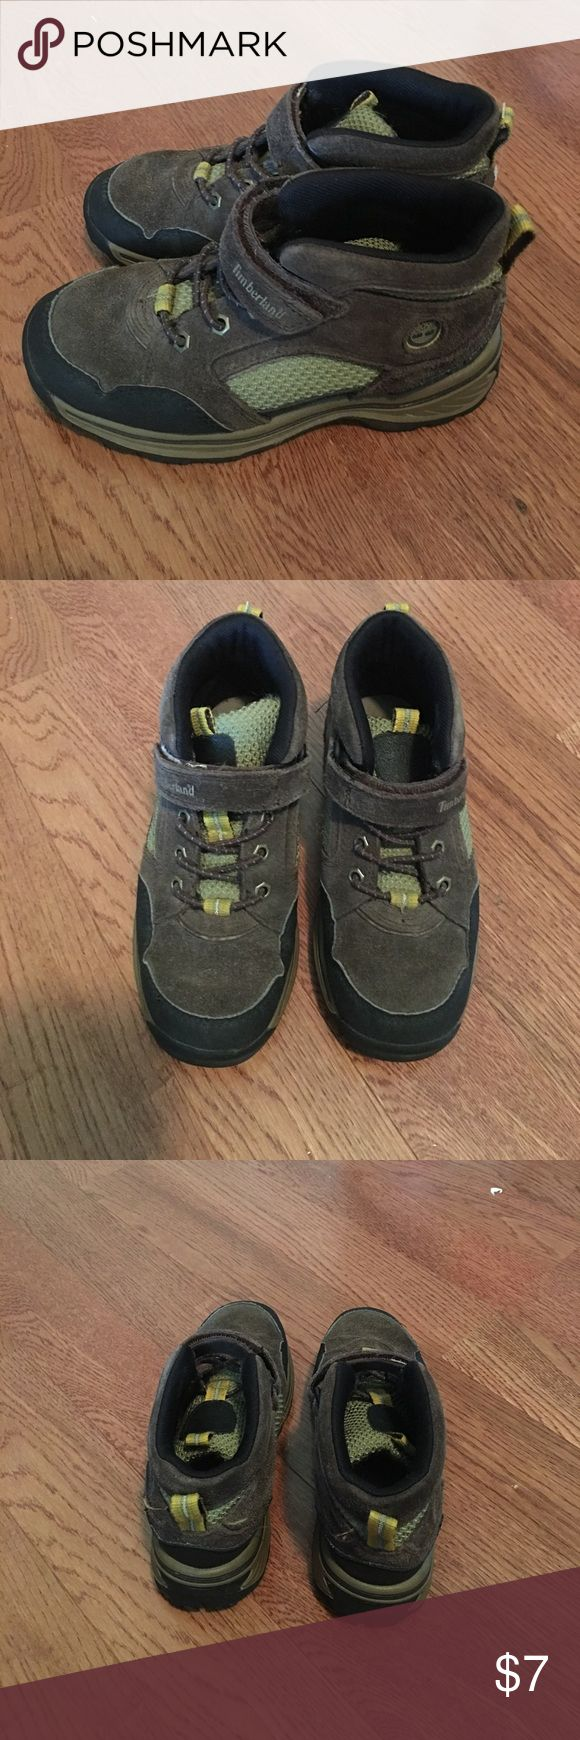 Timberland boots youth size 1 Good but good condition Timberland Shoes Rain & Snow Boots